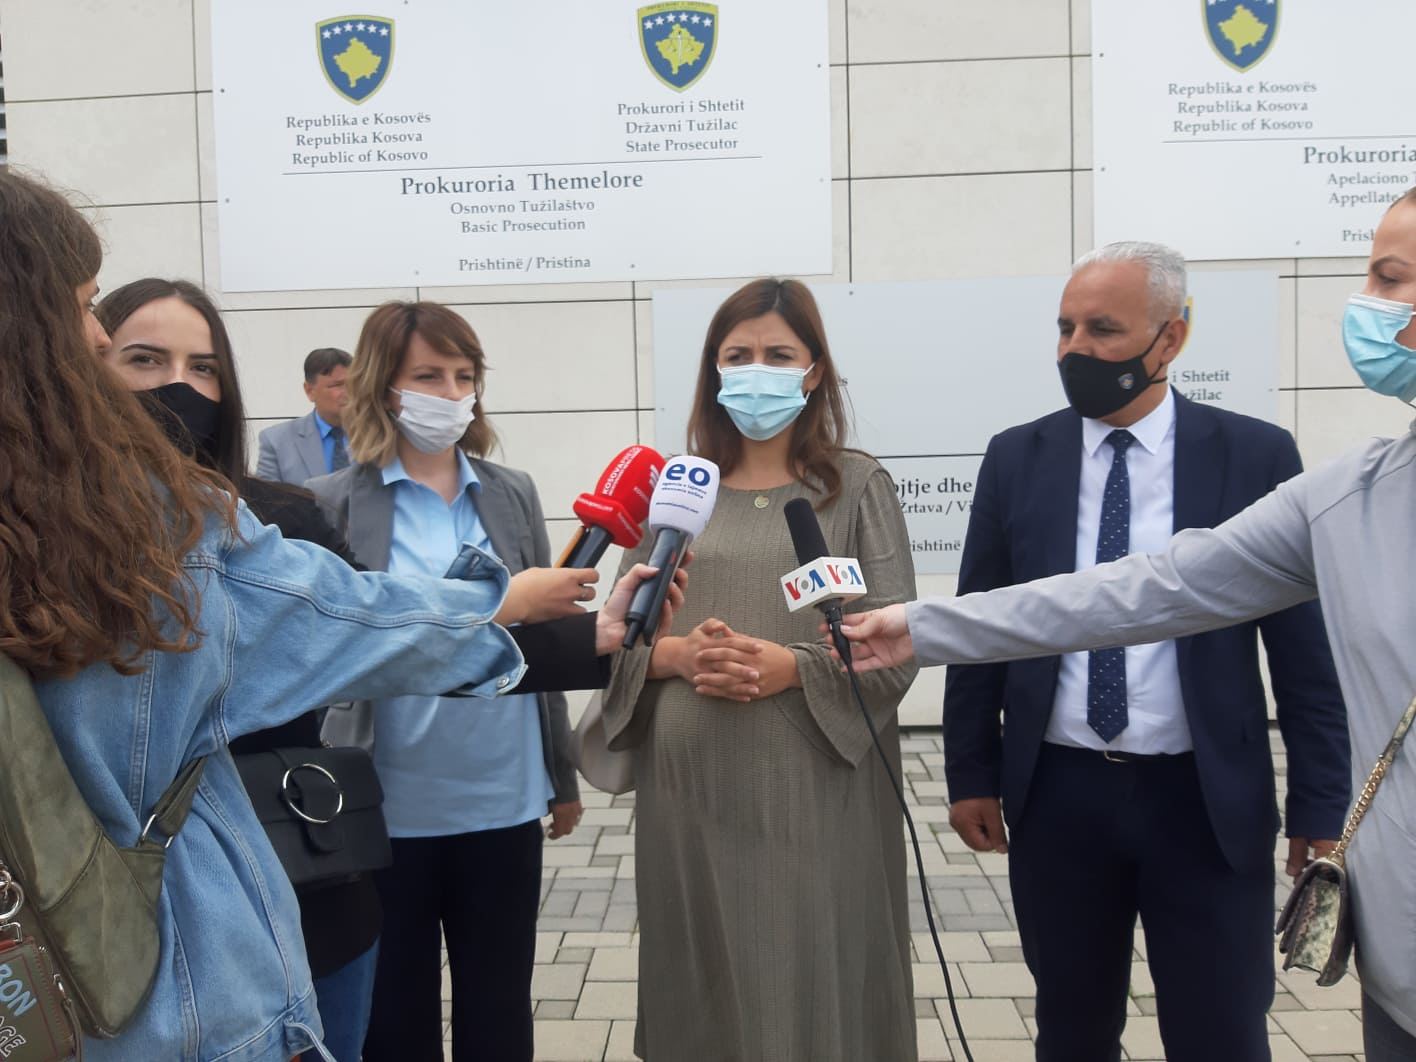 Haxhiu: The increase in cases of domestic violence is worrying, we will take measures